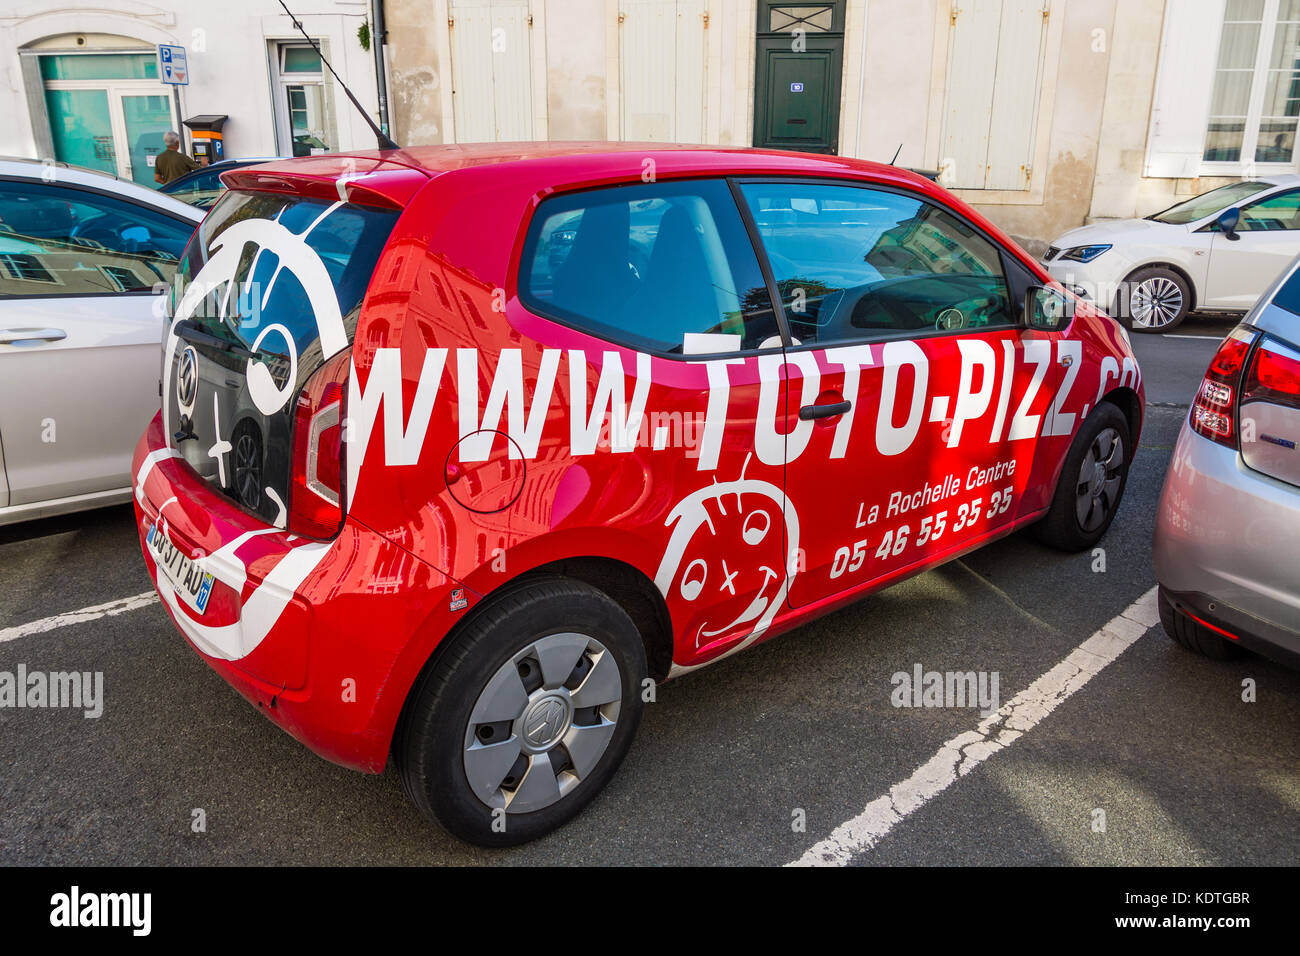 pizza delivery car stockfotos pizza delivery car bilder alamy. Black Bedroom Furniture Sets. Home Design Ideas